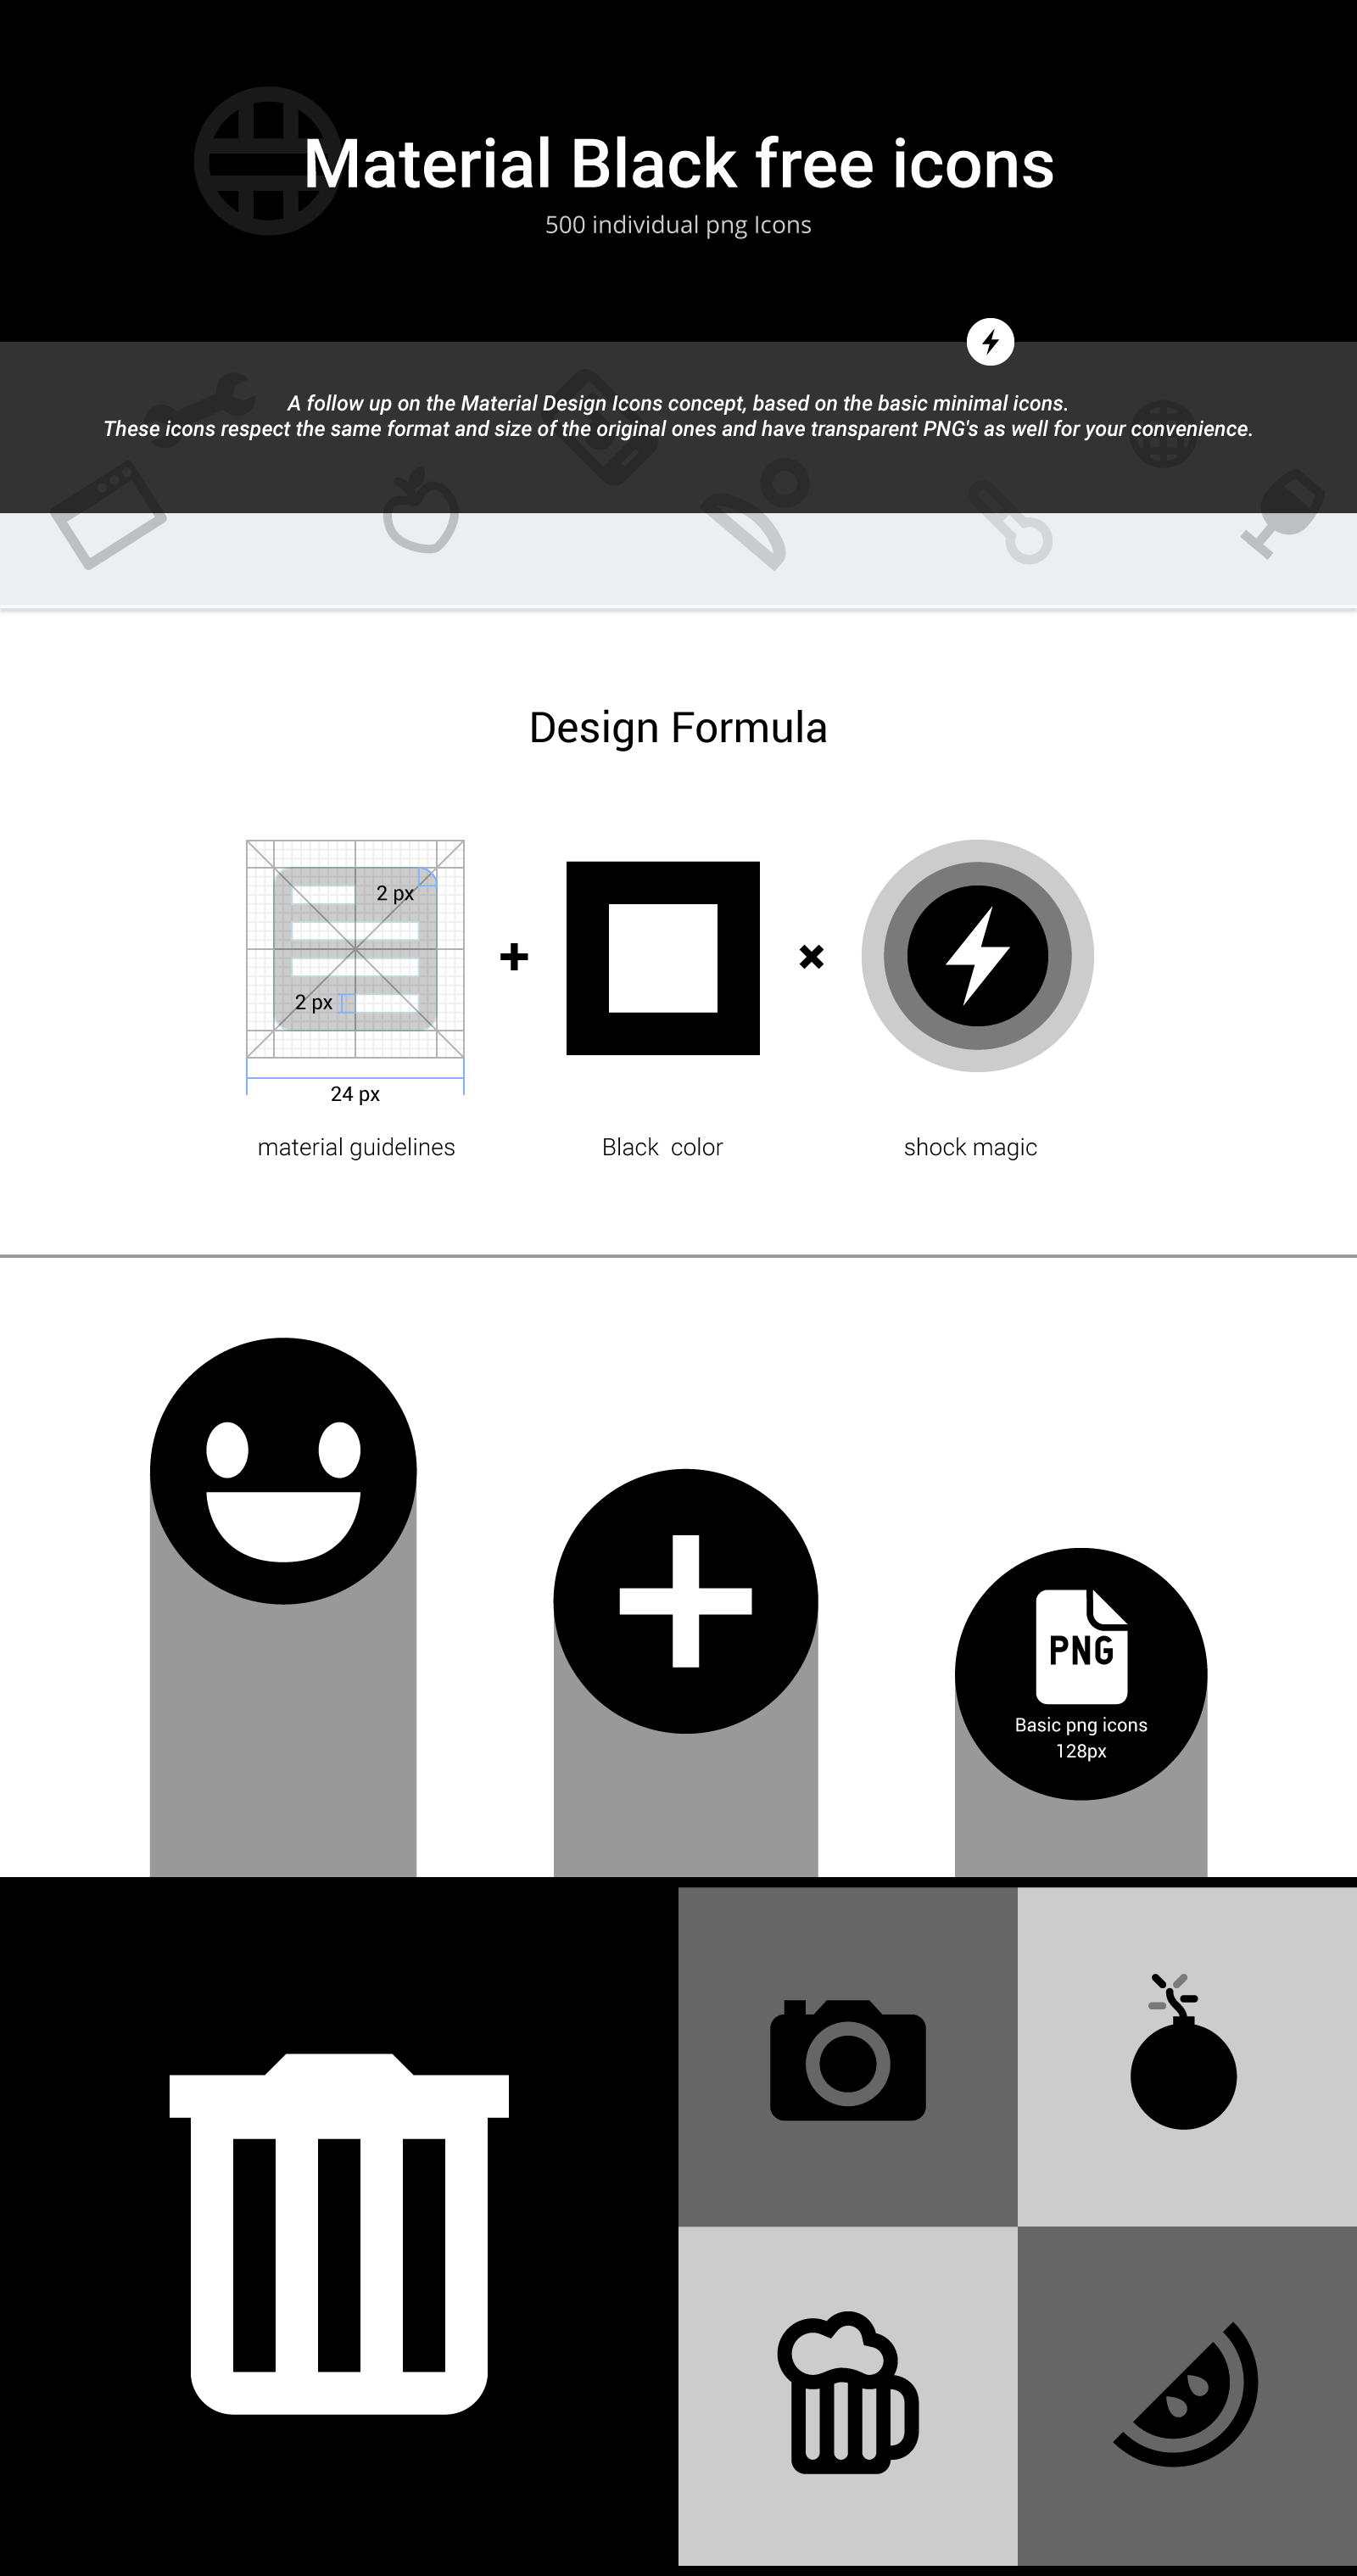 material_black_free_icons_1